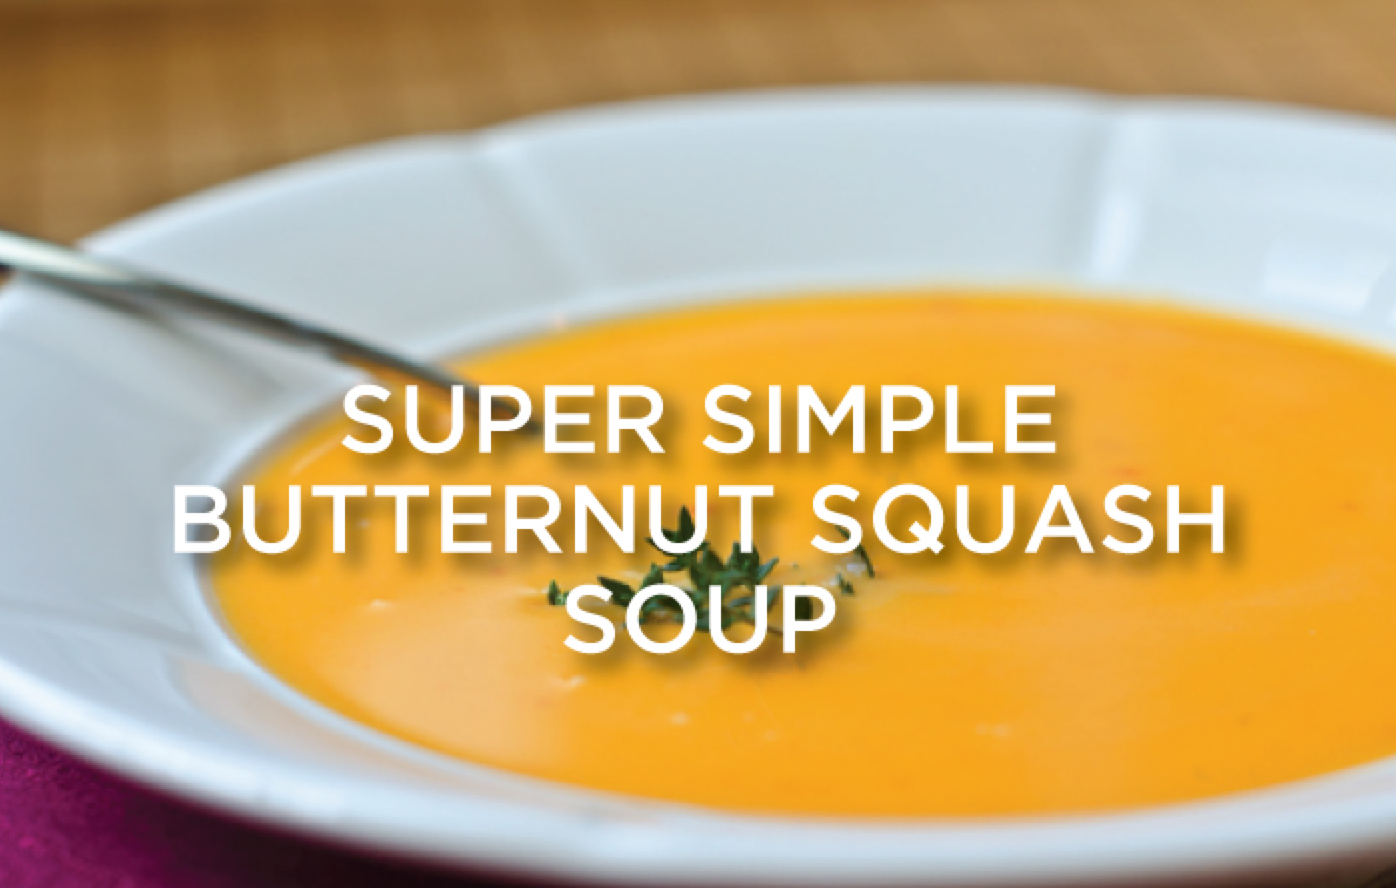 Super Simple Butternut Squash Soup by Sami G